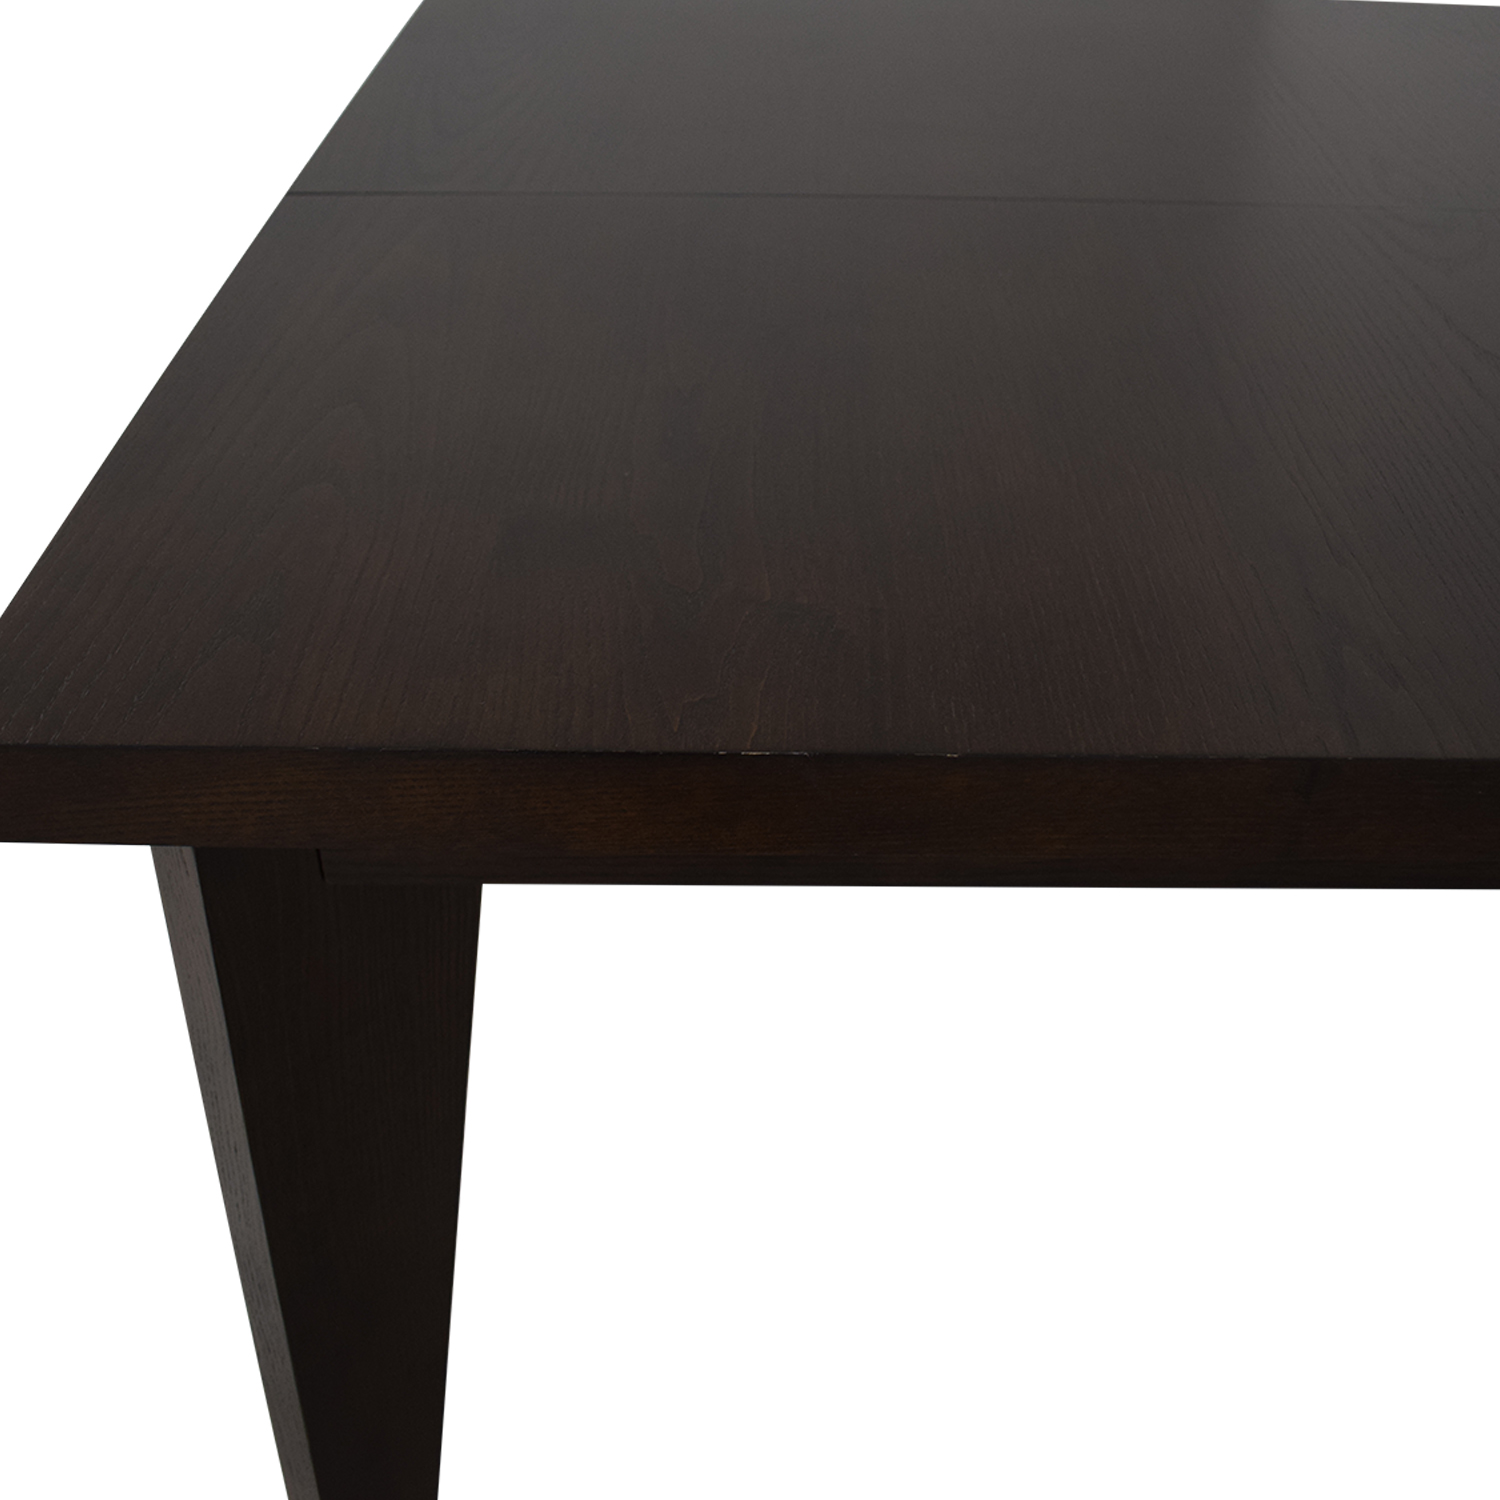 West Elm Angled Leg Expandable Table / Dinner Tables